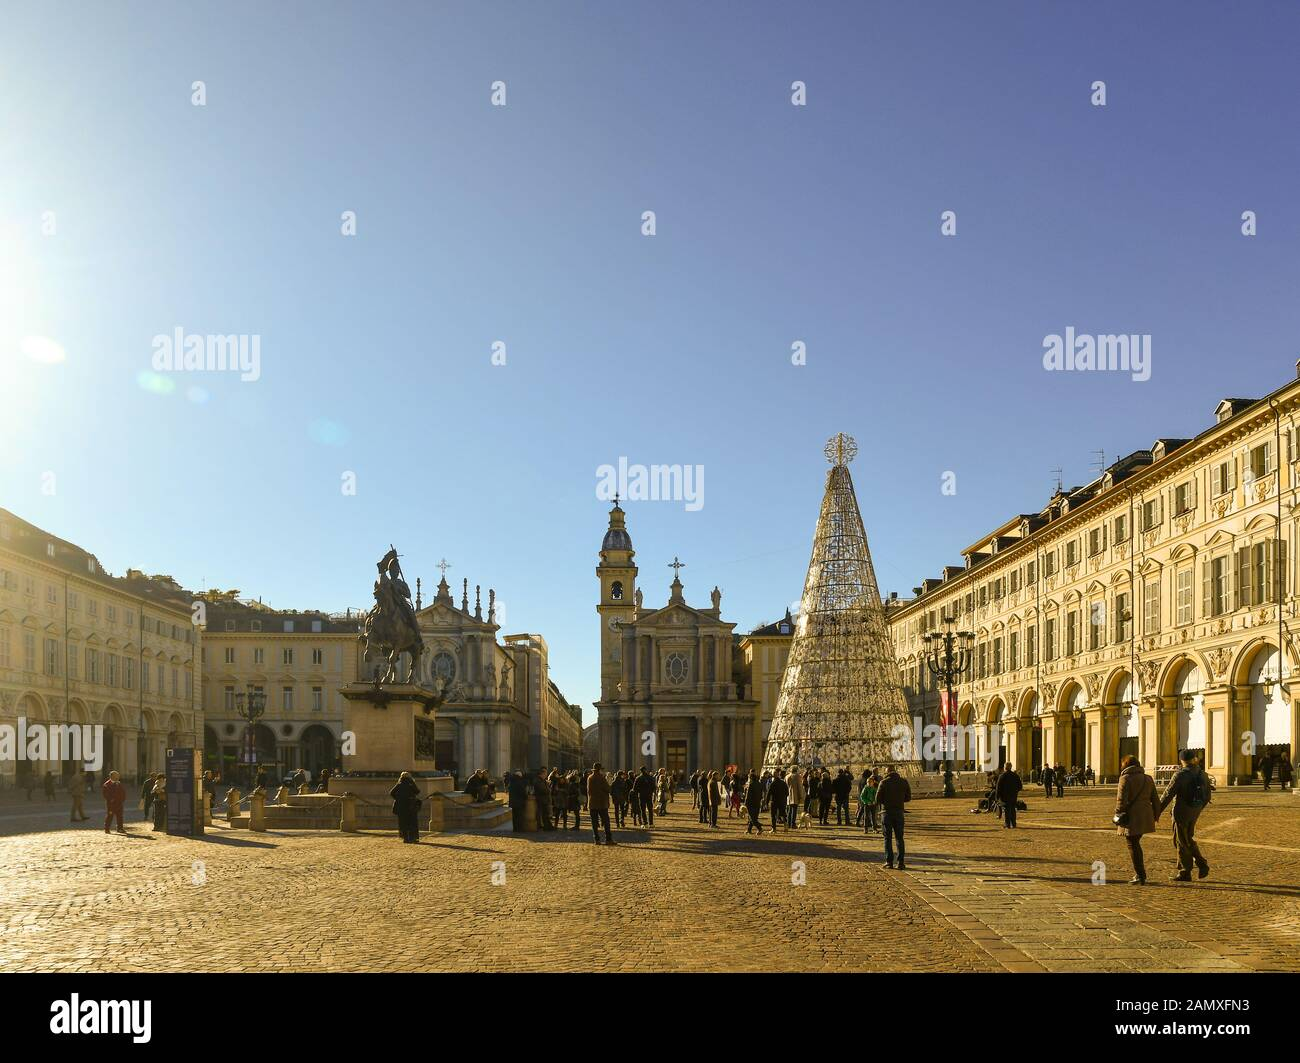 Piazza San Carlo square in the historic centre with people, tourists and the modern Christmas tree on a sunny Christmas day, Turin, Piedmont, Italy Stock Photo